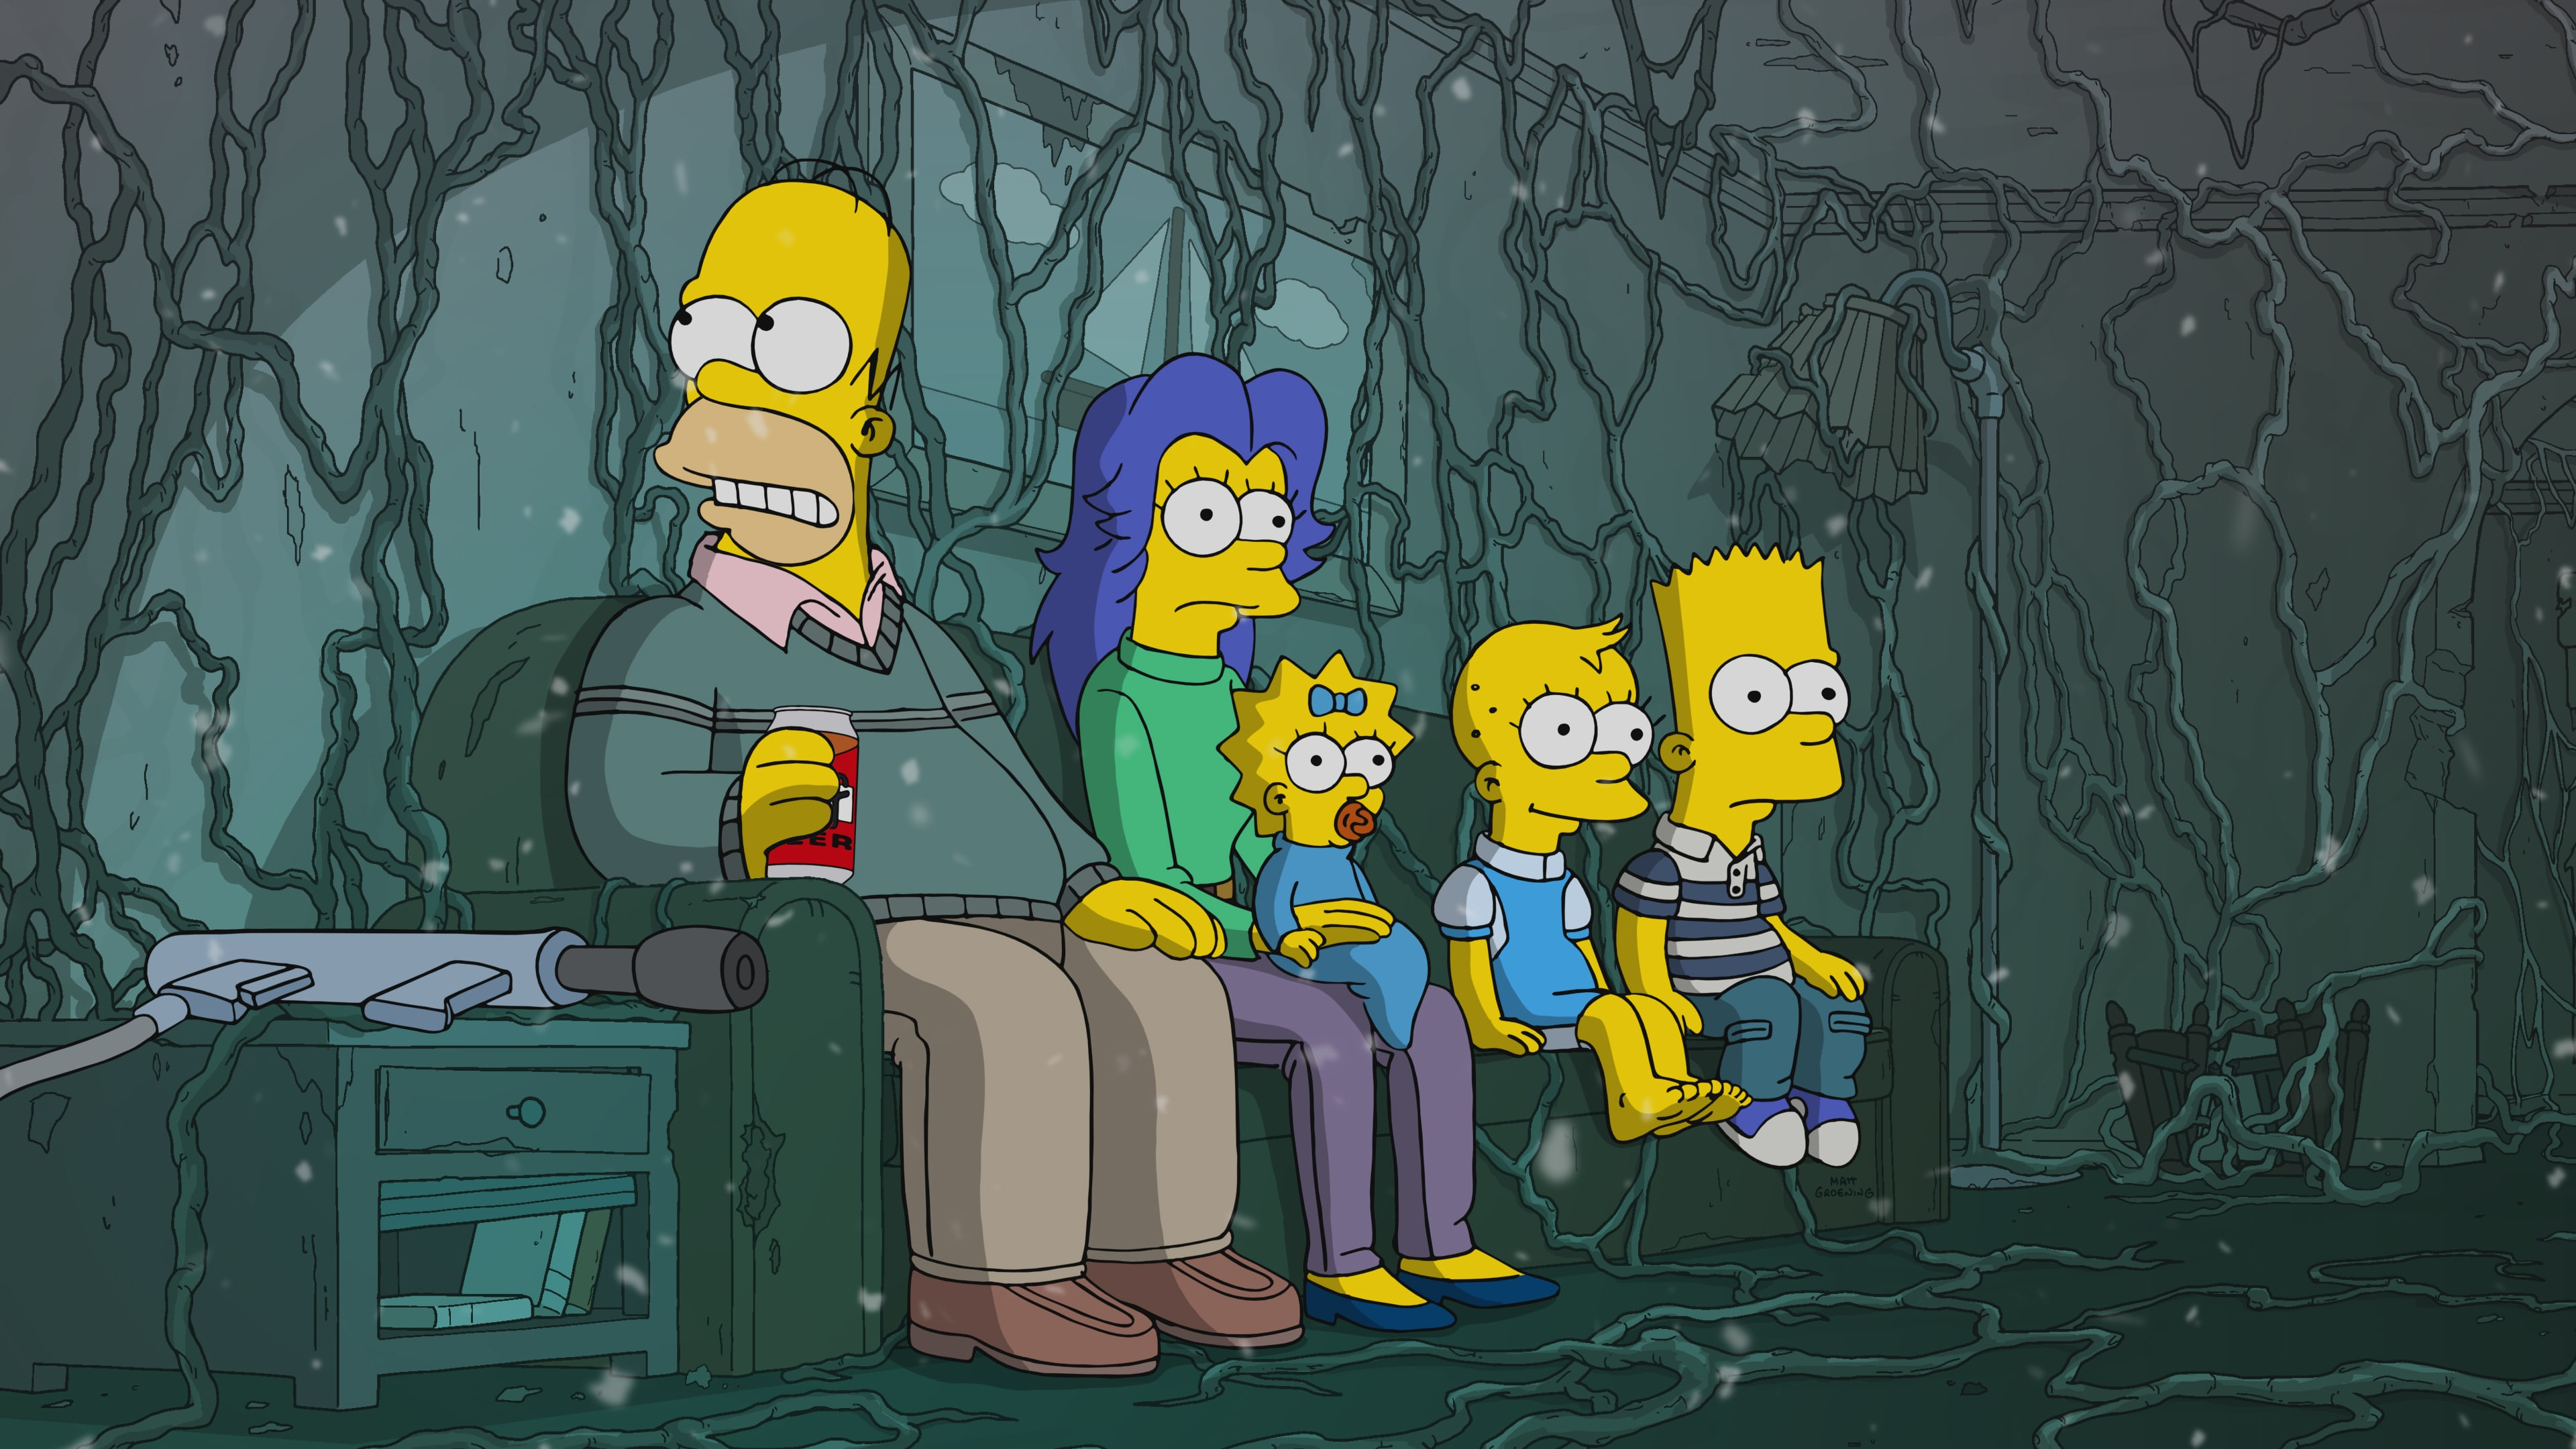 """THE SIMPSONS: The 30th Treehouse of Horror features a demon Maggie, a mission to rescue Milhouse from another dimension, dead-Homer's spirit trying on some new bodies for size and Selma finally finding love in an unlikely place – the alien in the basement. Don't miss the """"Treehouse of Horror XXX"""" episode of THE SIMPSONS."""